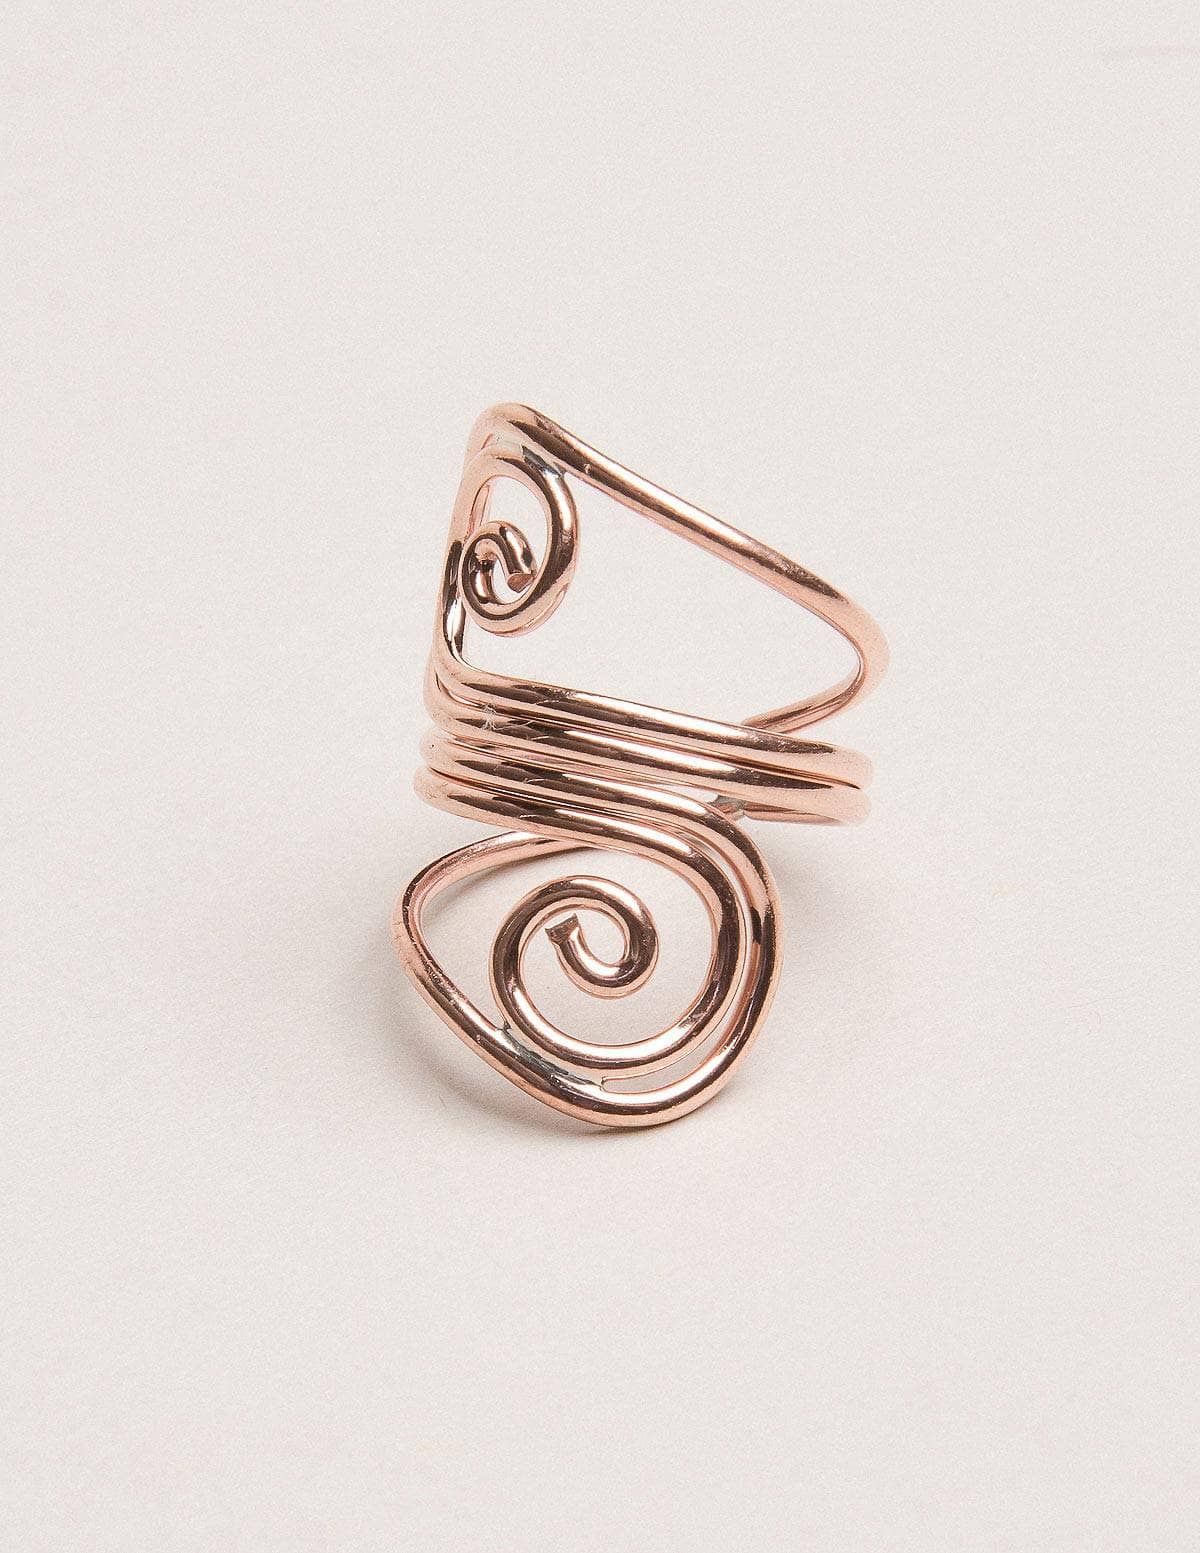 Handcrafted Hammered Copper Ring Adjustable from Size 9